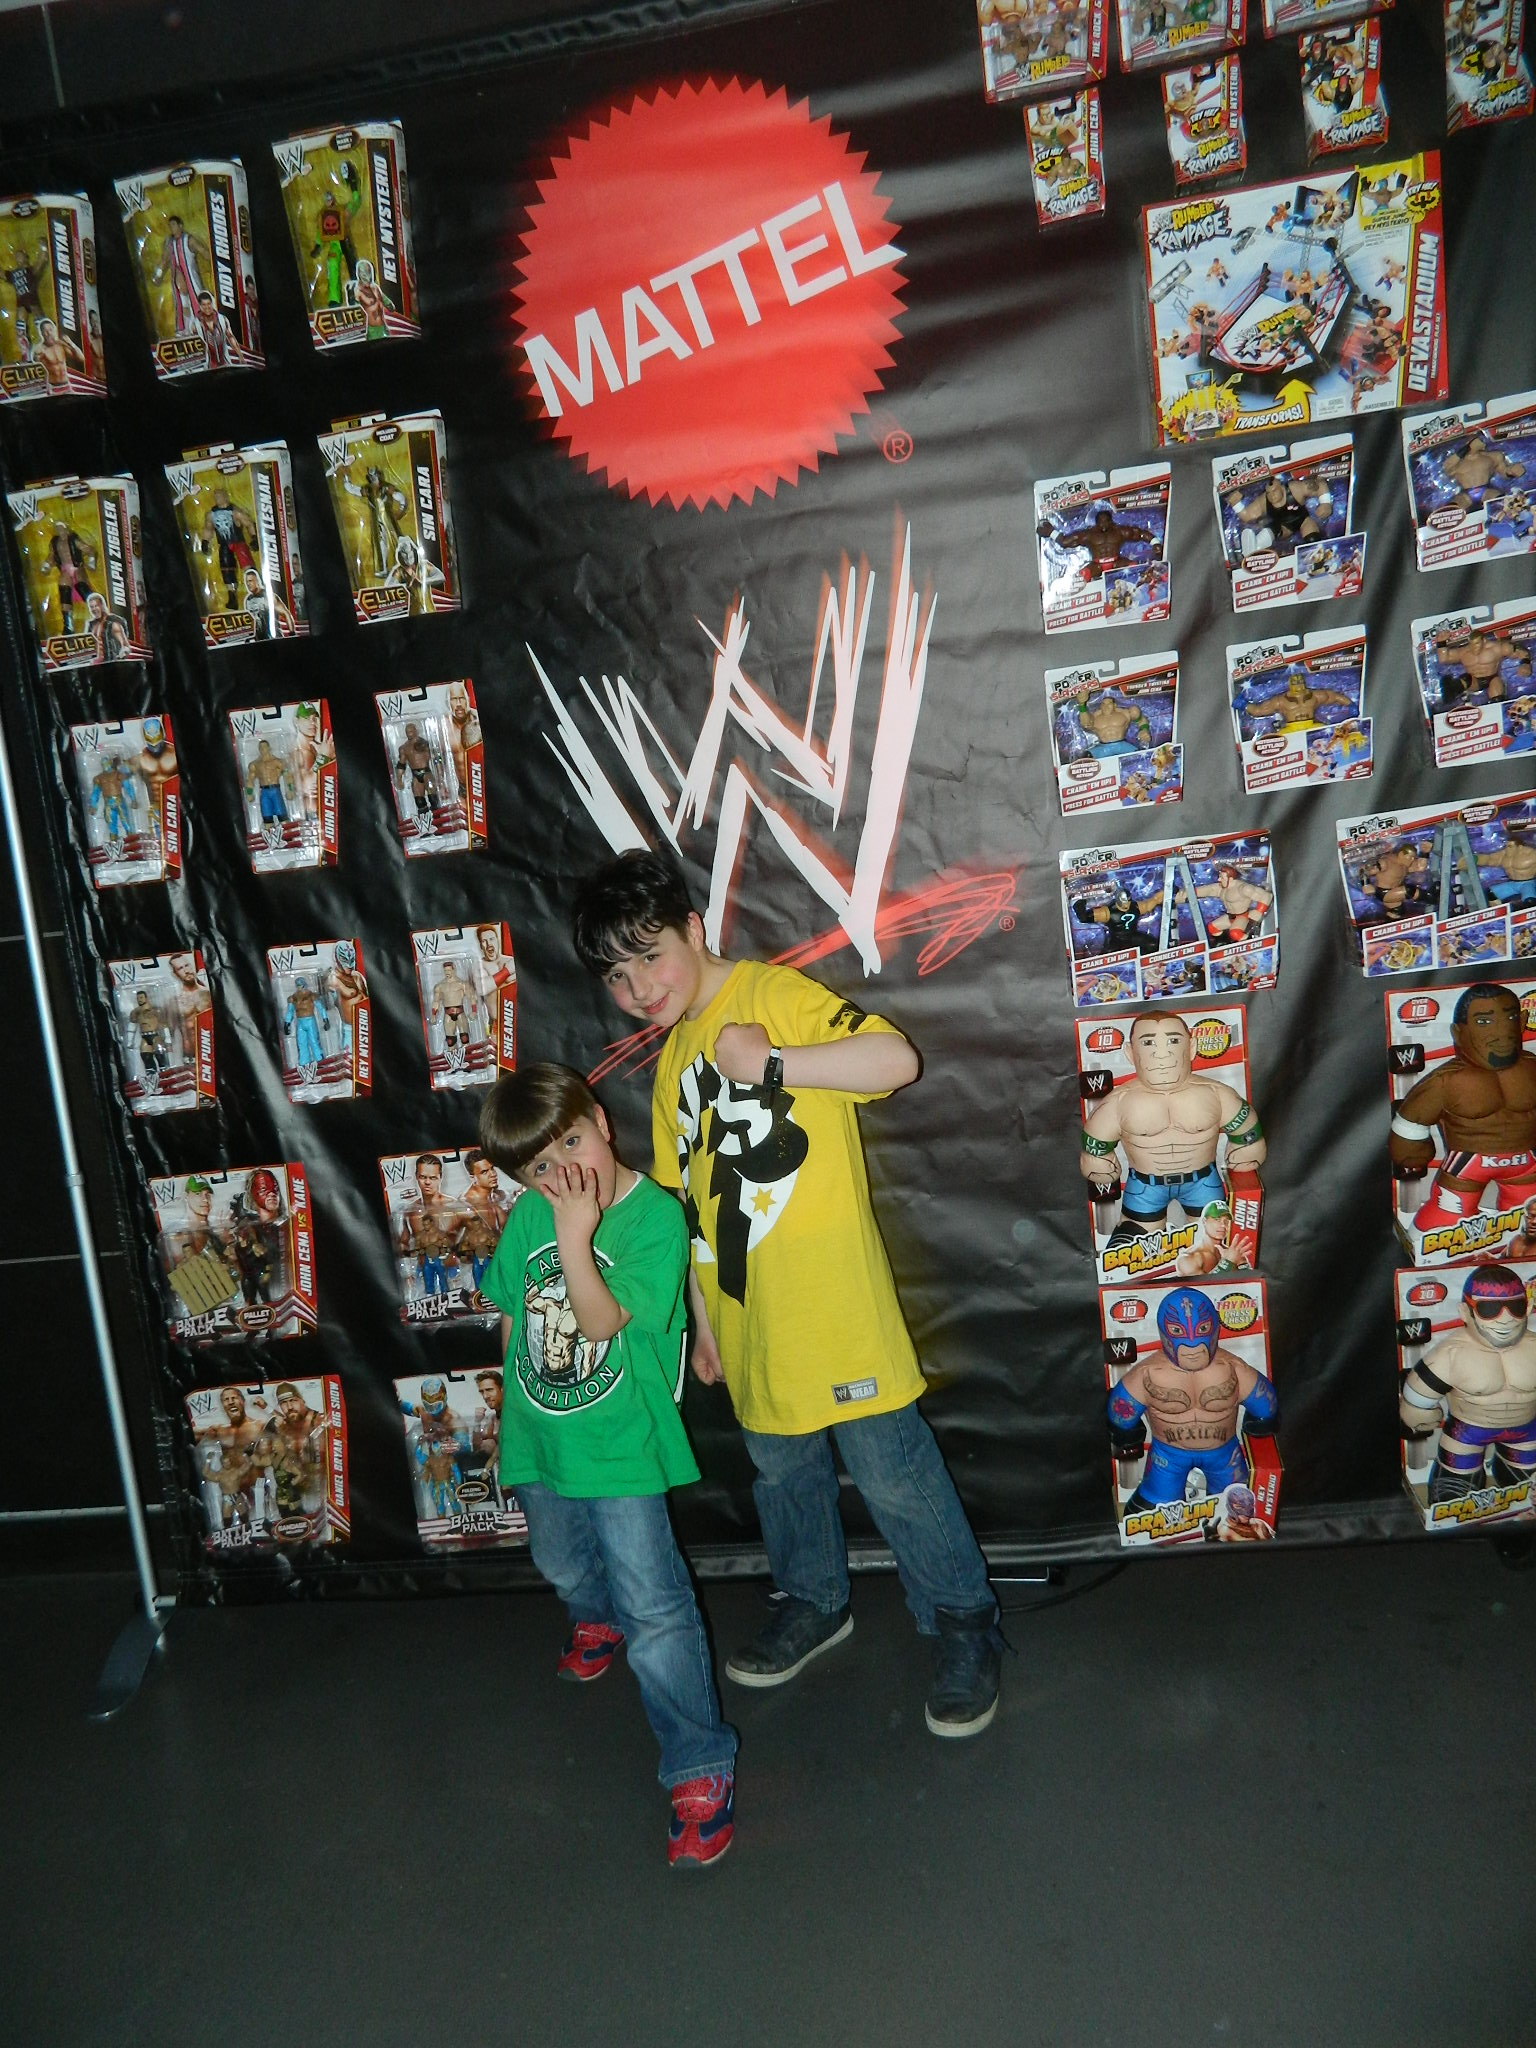 wwe are all special Dynamic mommy and son duo living life to the fullest while navigating specials needs (cerebral palsy) and spreading awarenss of pediatric stroke we add a twist of.